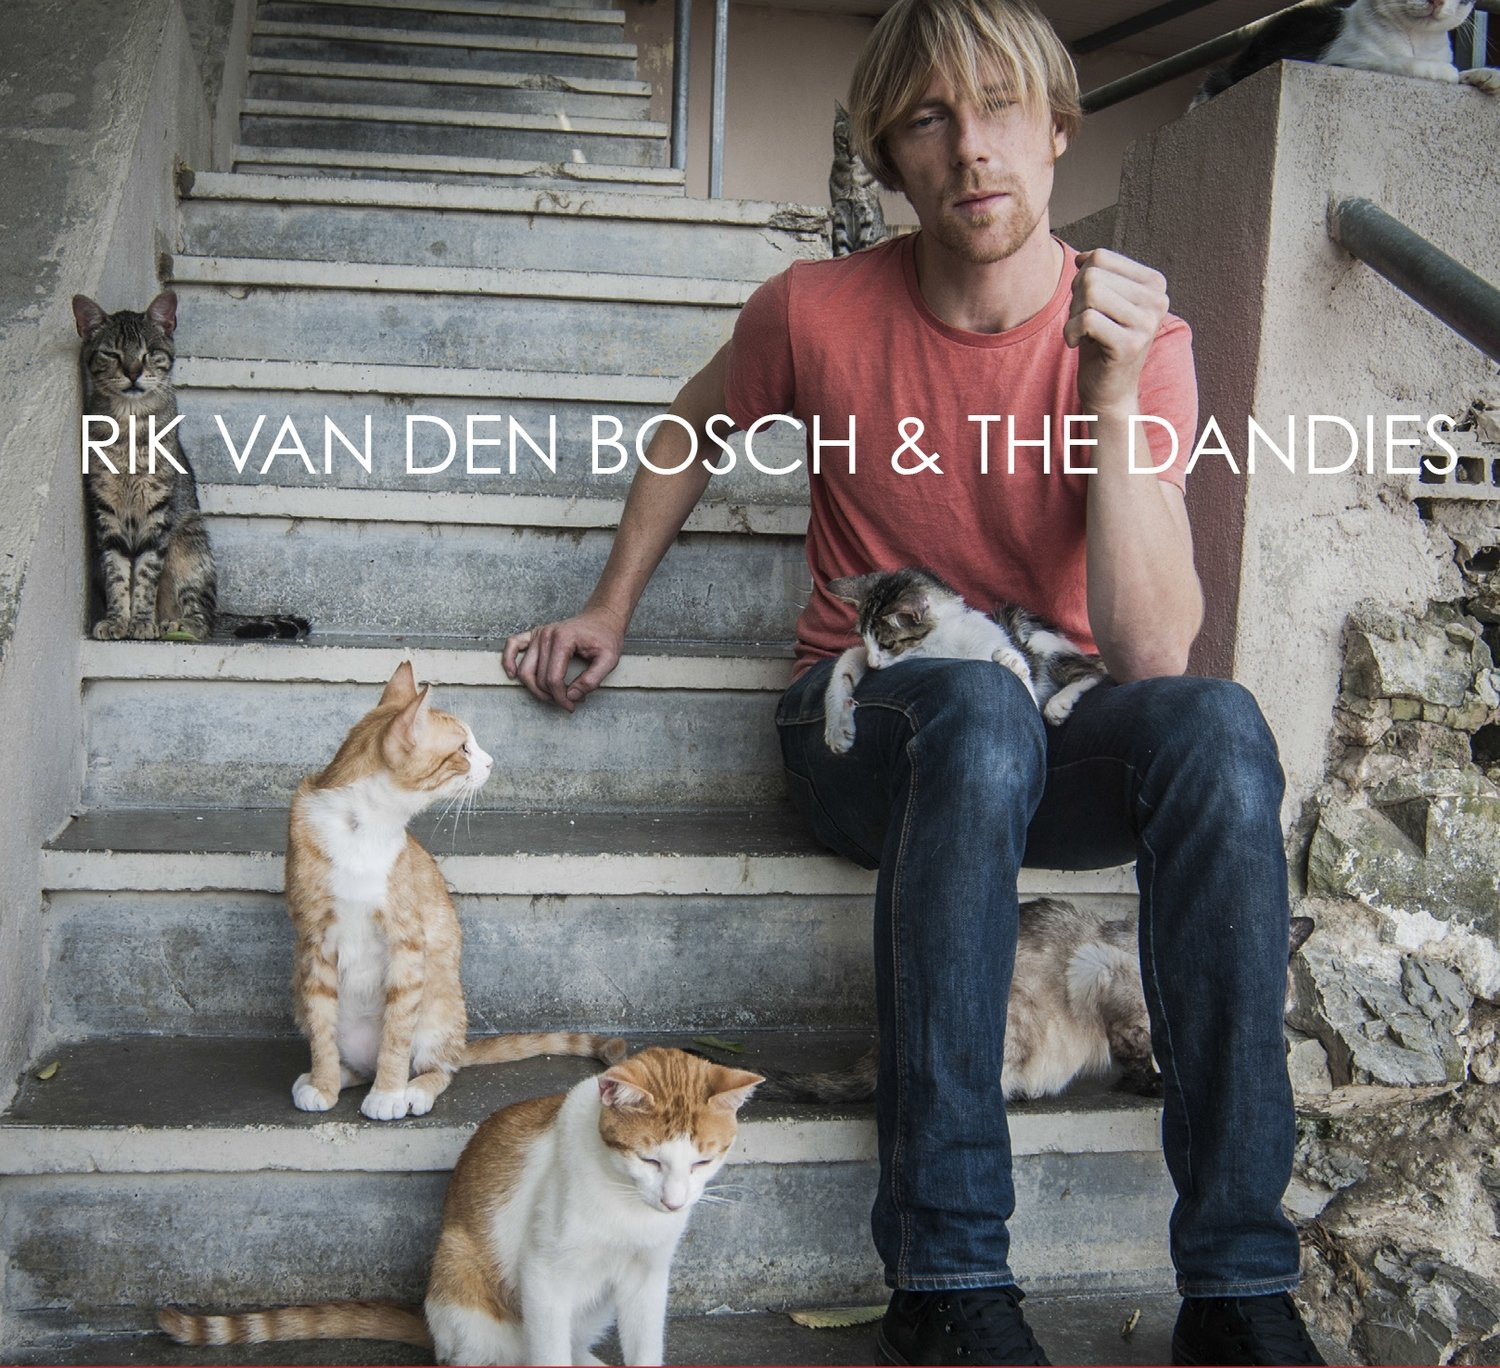 Rik van den Bosch & the Dandies, full album, on CD